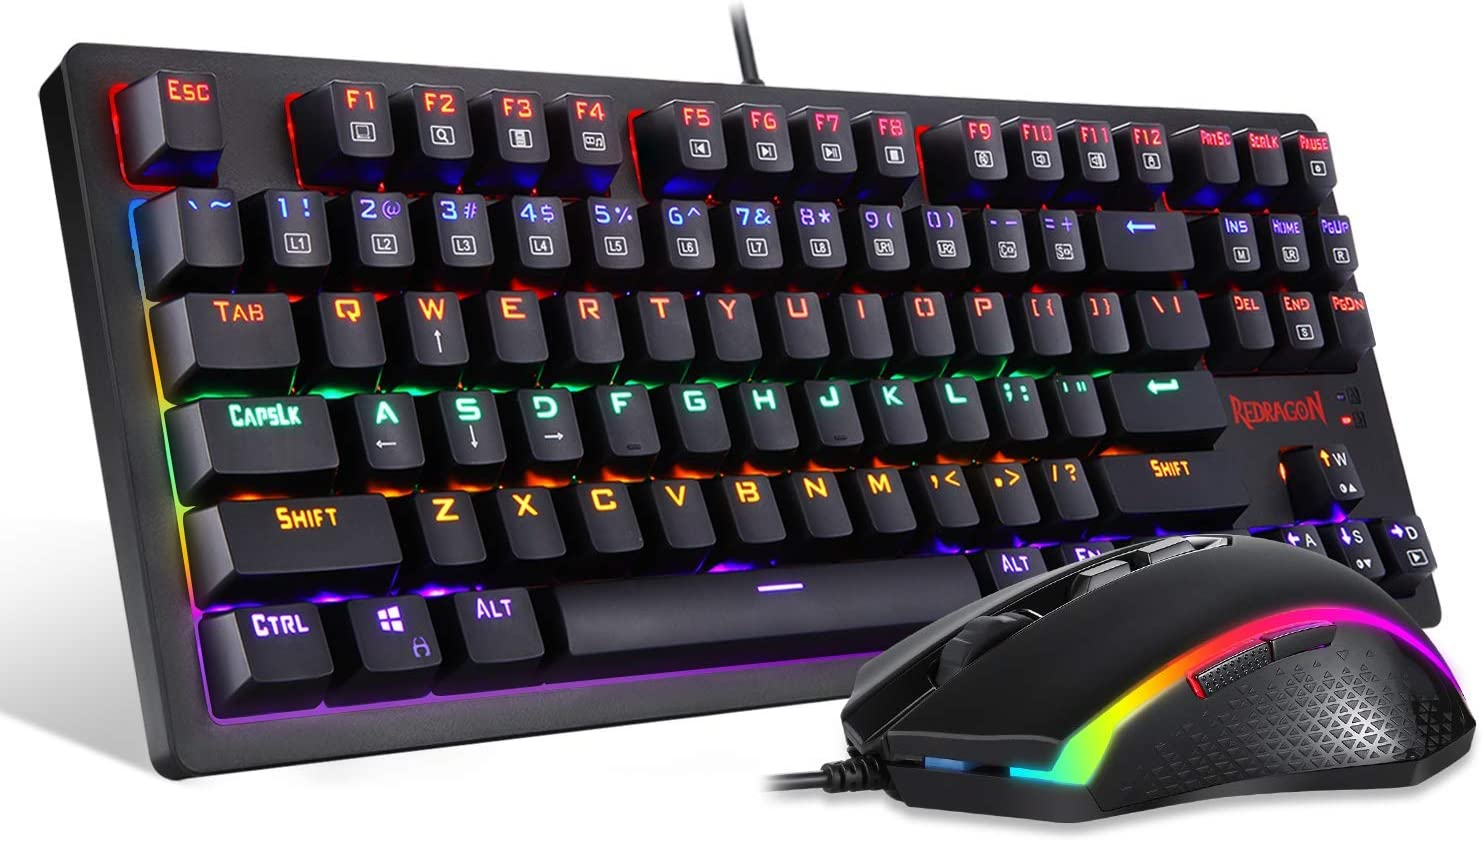 Redragon S113 Gaming Keyboard Mouse Combo Wired Mechanical LED RGB Rainbow Keyboard Backlit with Brown Switches and RGB Gaming Mouse 4200 DPI for Windows PC Gamers (Renewed)